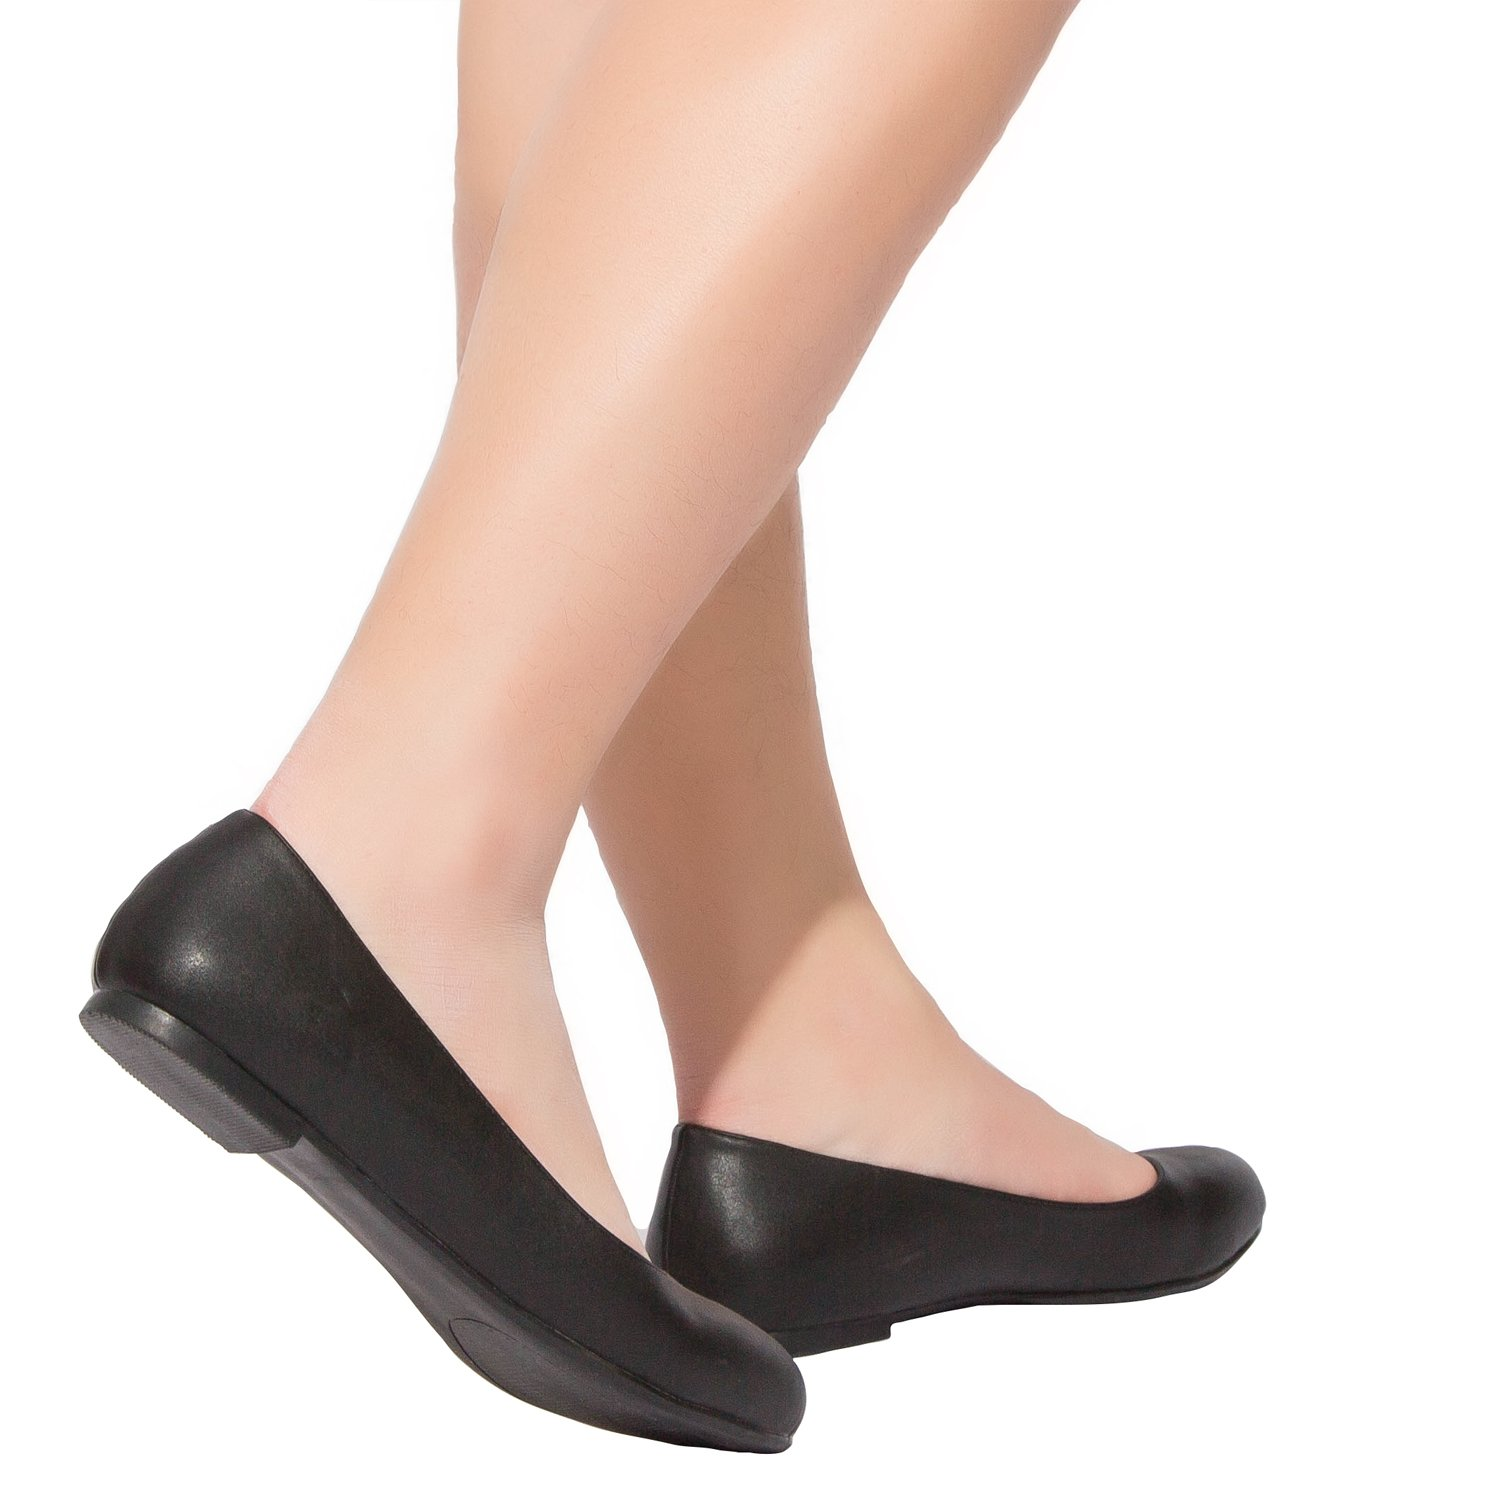 Luoika Women's Wide Width Flat Shoes - Comfortable Slip On Round Toe Ballet Flats. (180110 Black PU,9WW) by Luoika (Image #7)